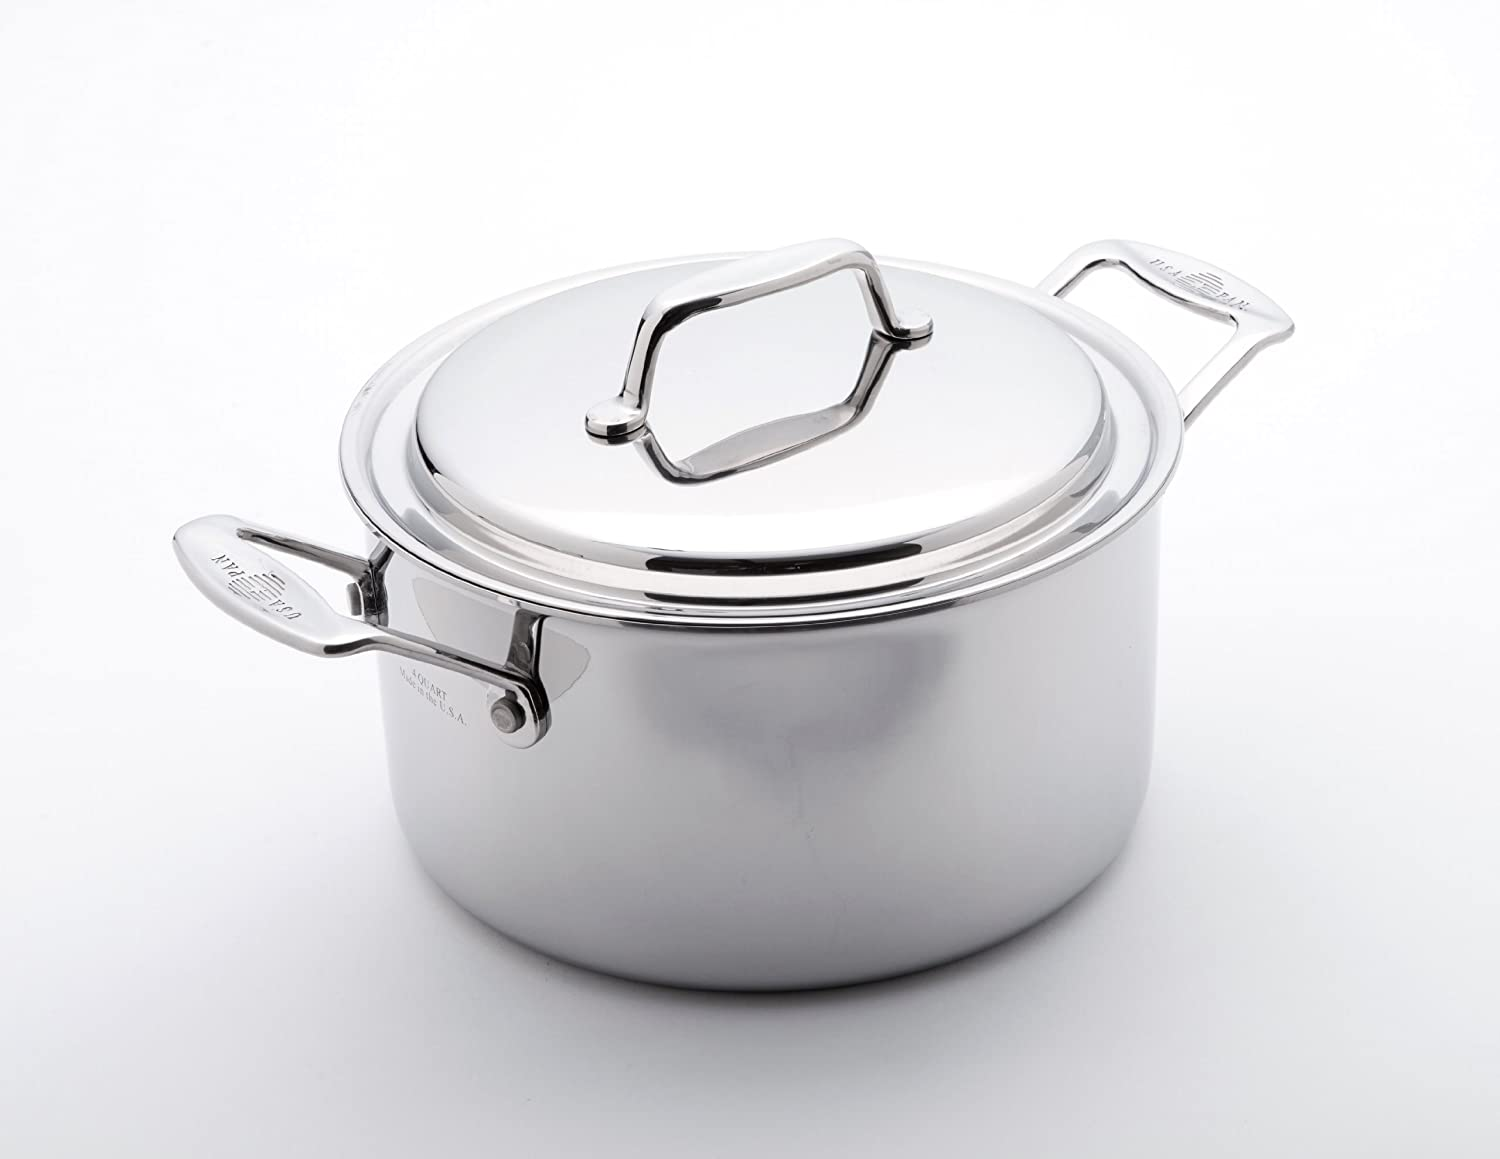 USA Pan 1515CW-1 Cover, 4 Quart Stock Pot Stainles Steel